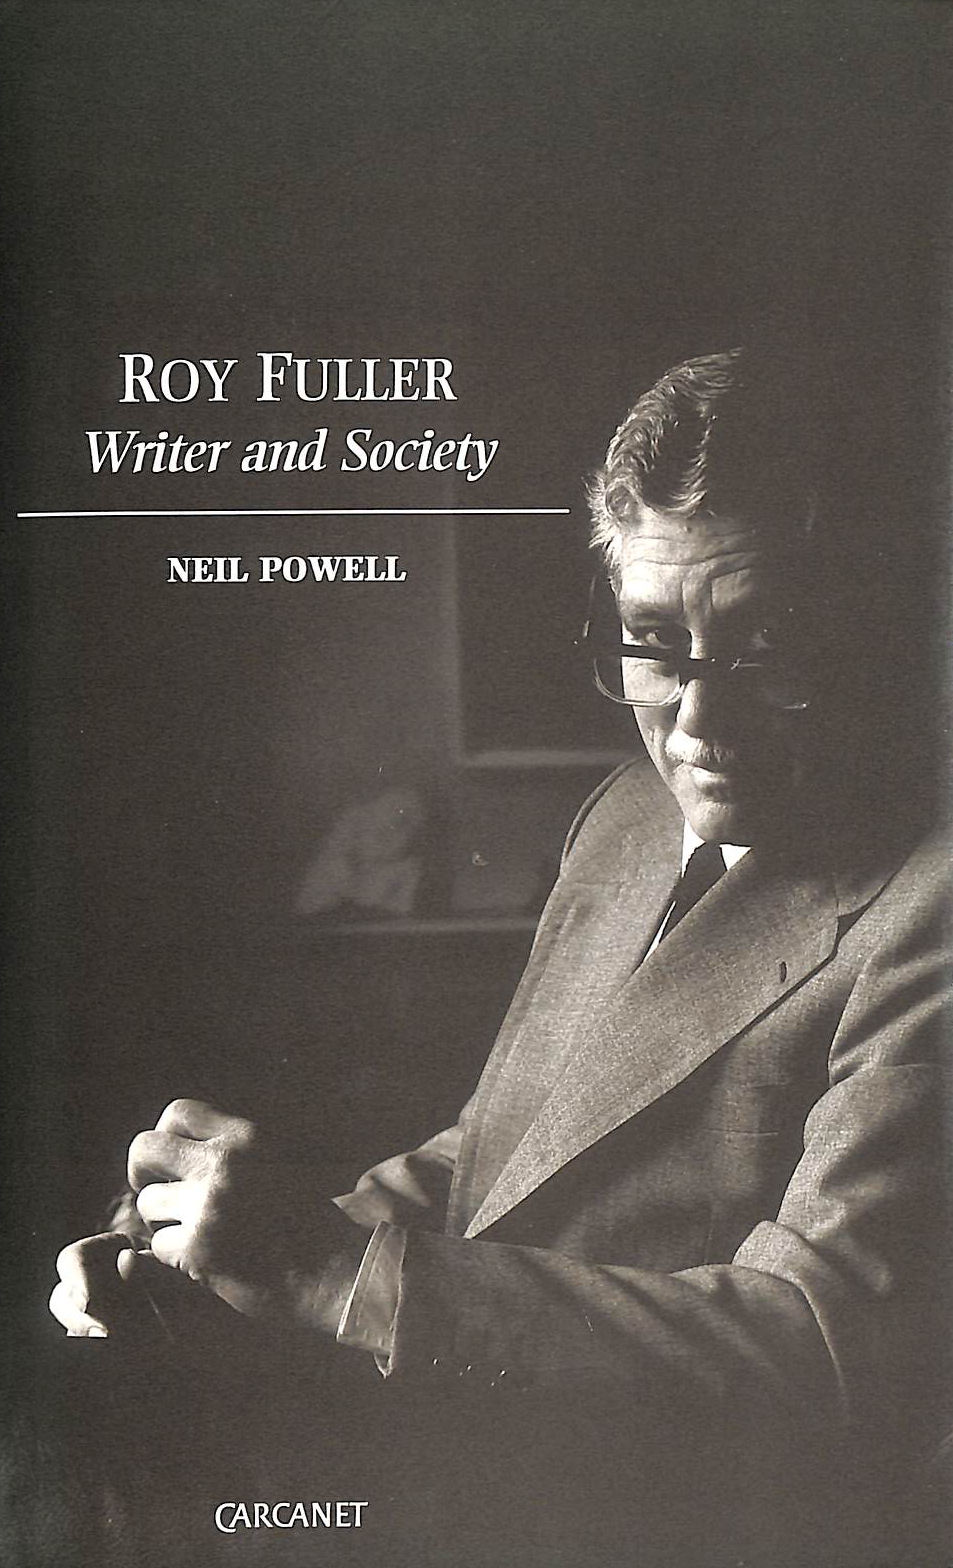 Image for Roy Fuller: Writer and Society (Lives & letters)